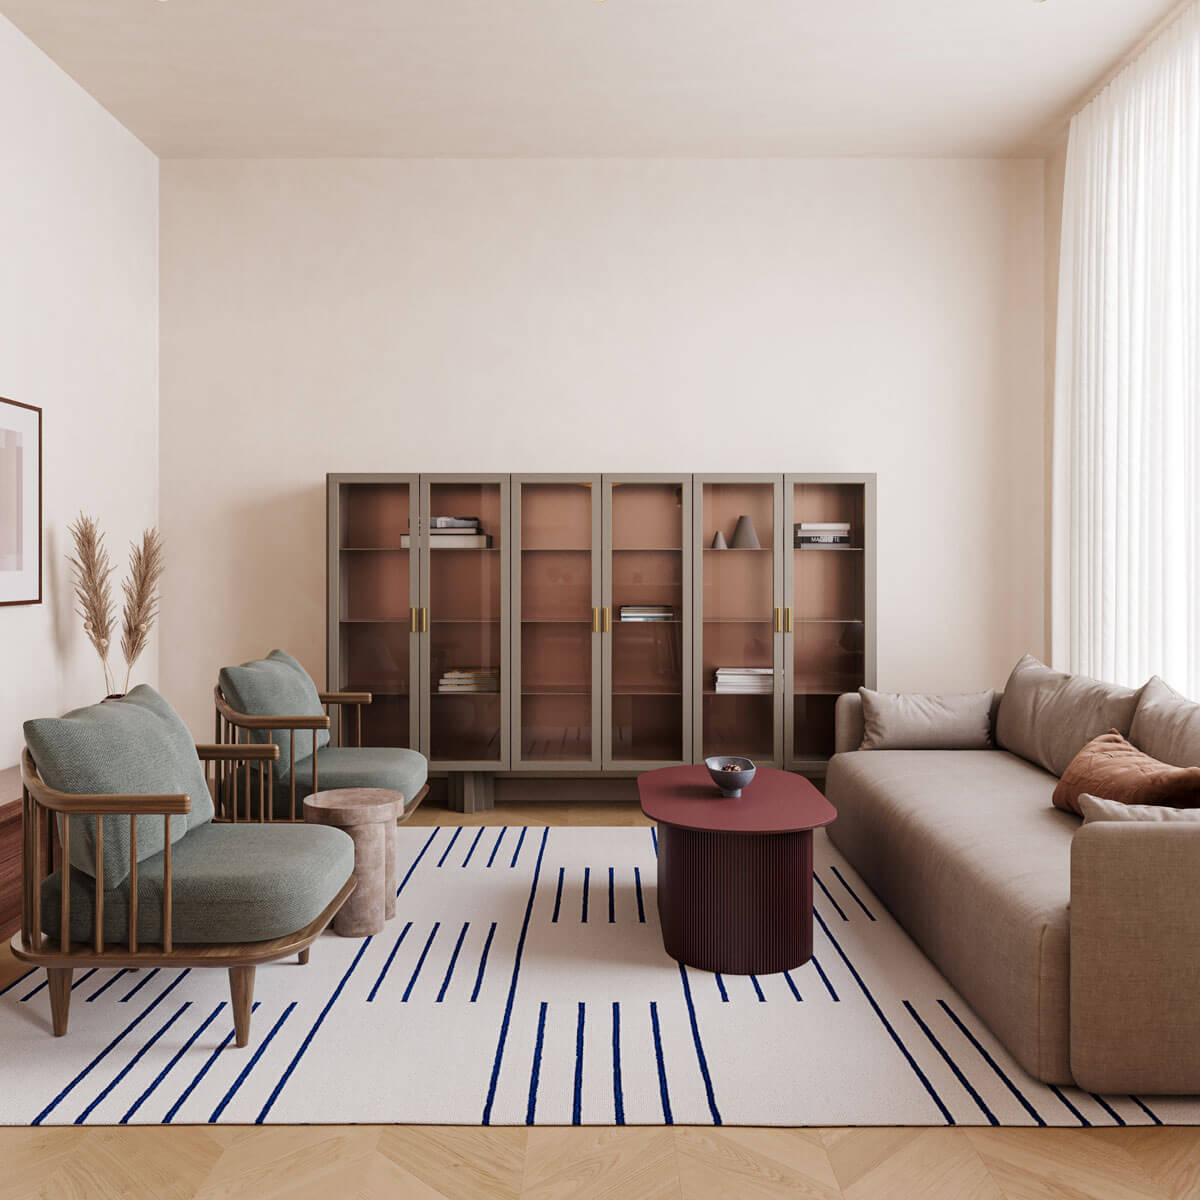 Flatweave rug Classic in Cream shown in nicely decorated living room.